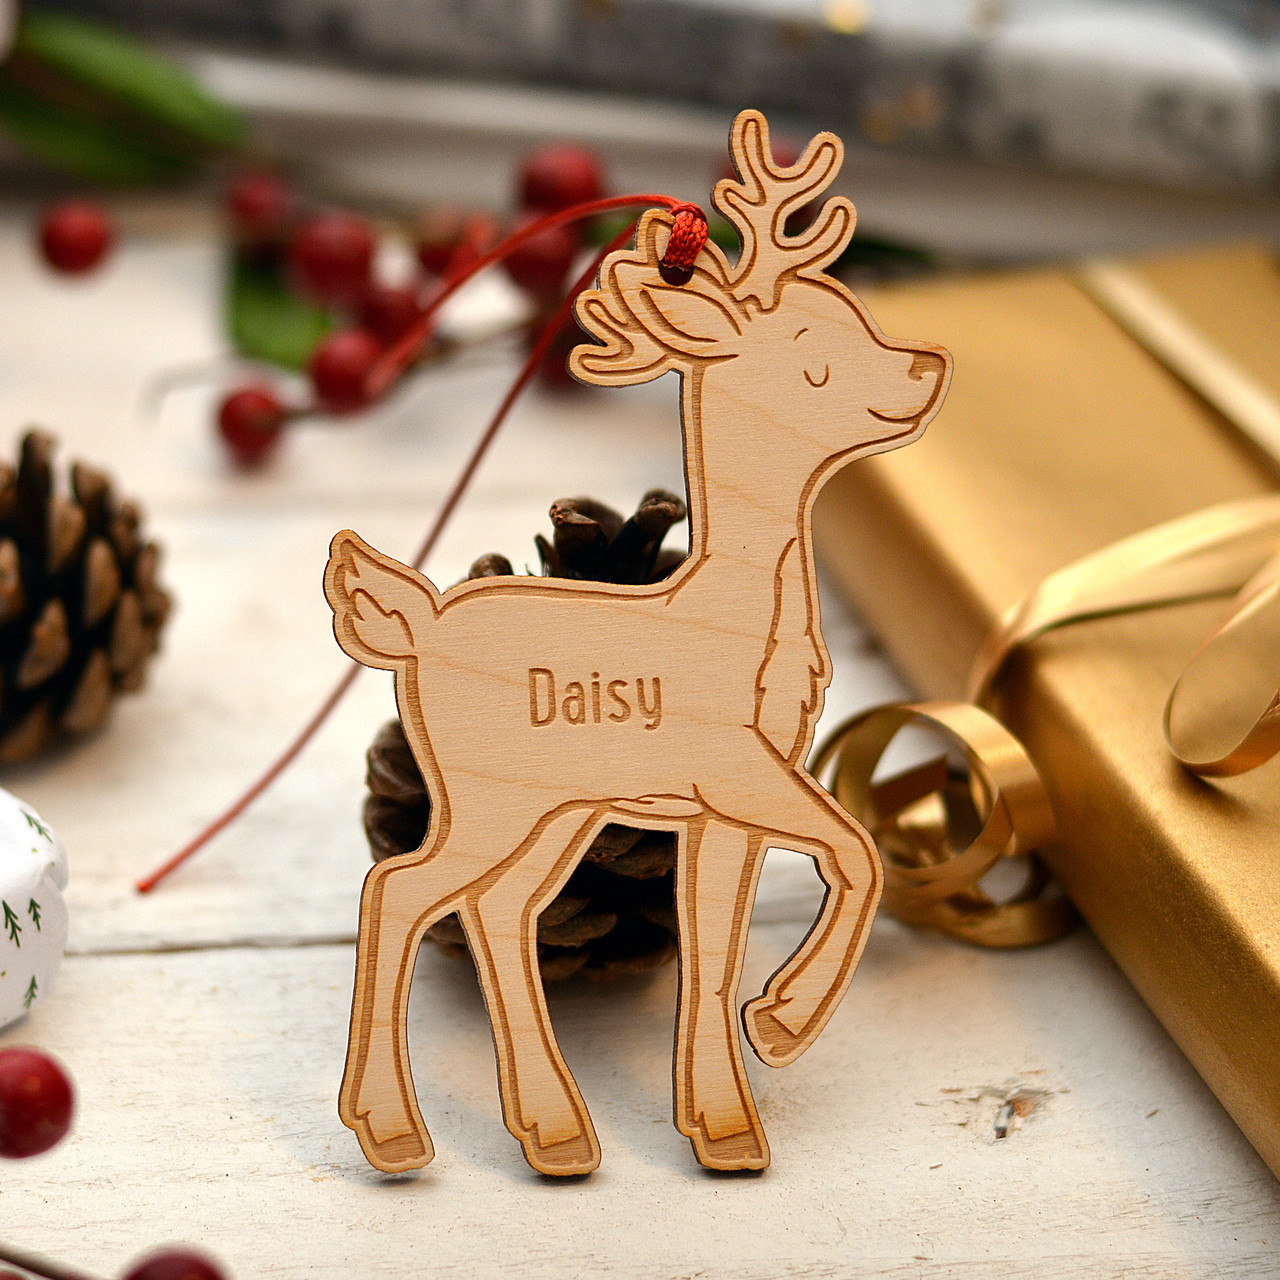 Personalised Wooden Reindeer Decoration The Crafty Giraffe